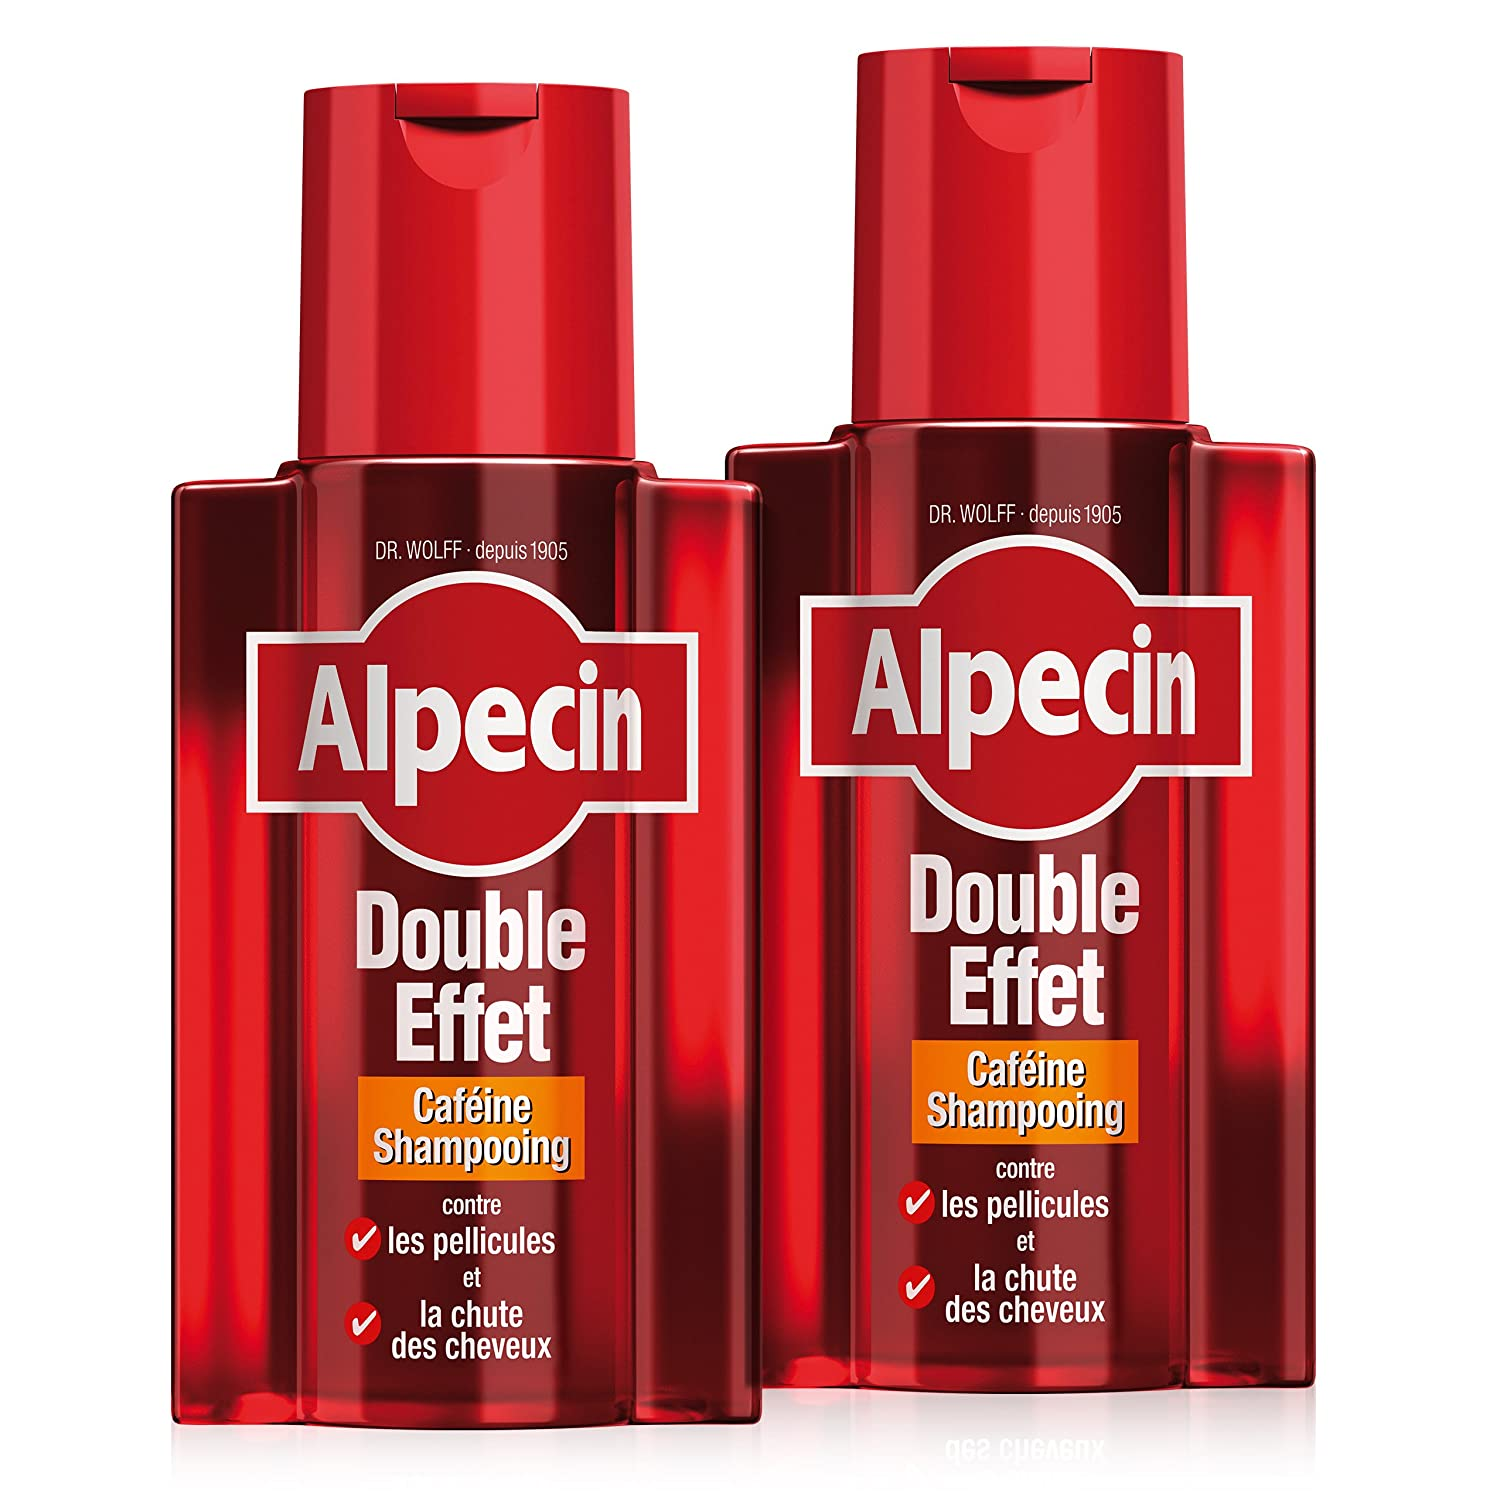 Alpecin Shampooing Caféine Double Effet, 2x200 ml - Shampooing anti-chute et antipelliculaire F21863